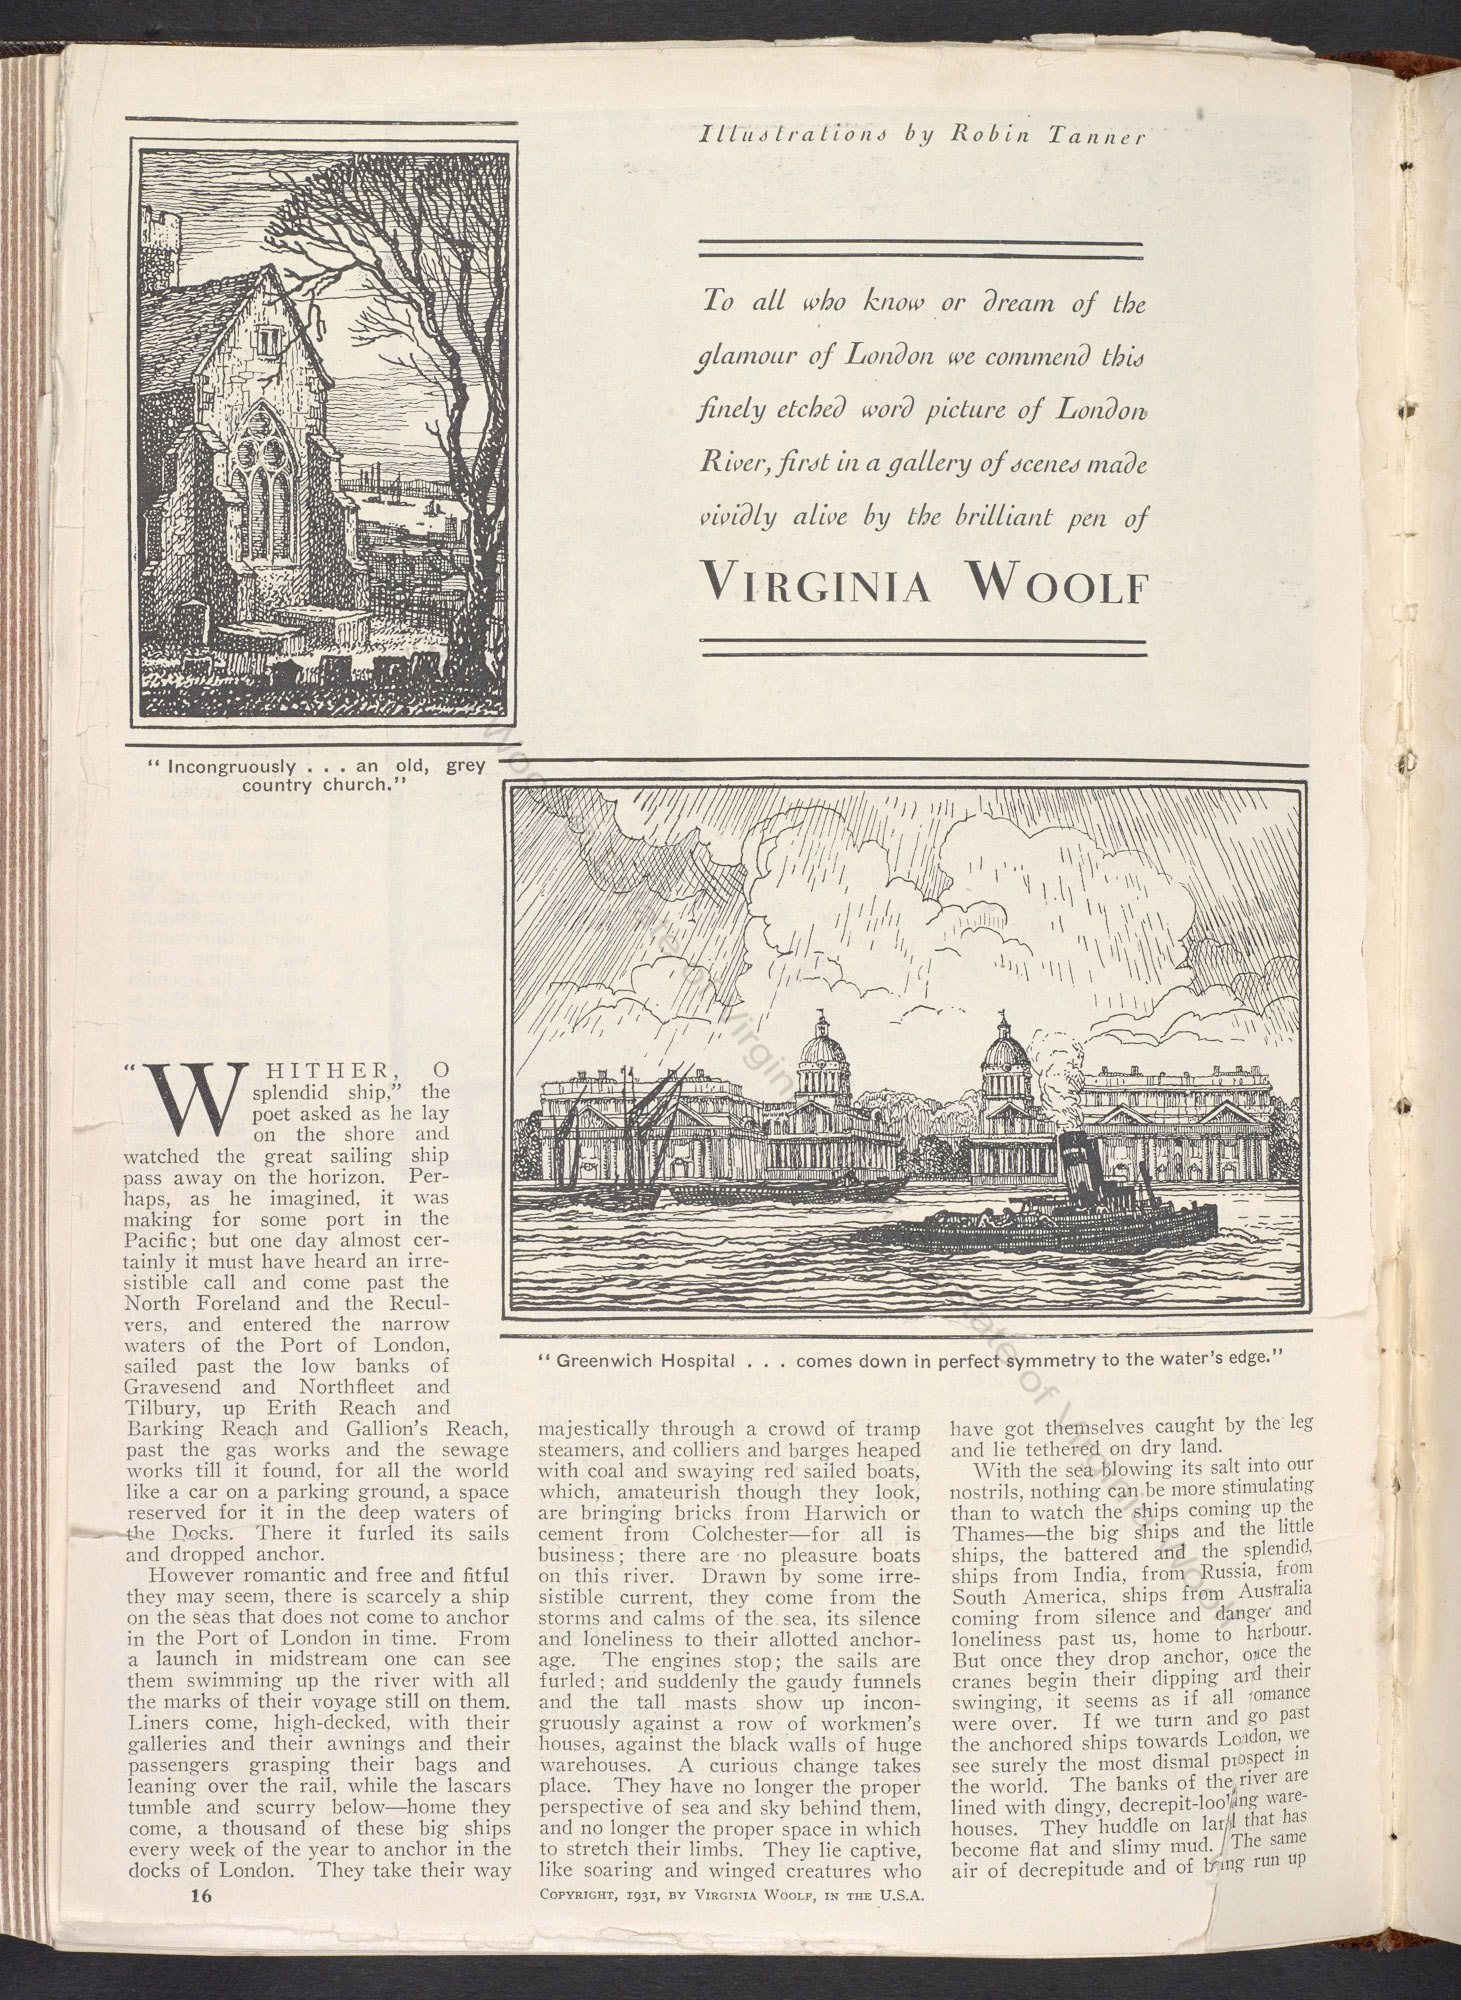 The London Scene Essays By Virginia Woolf From Good Housekeeping  The London Scene Essays By Virginia Woolf From Good Housekeeping Magazine Essay About Healthy Lifestyle also How To Write A Thesis For A Narrative Essay  Essay On English Literature